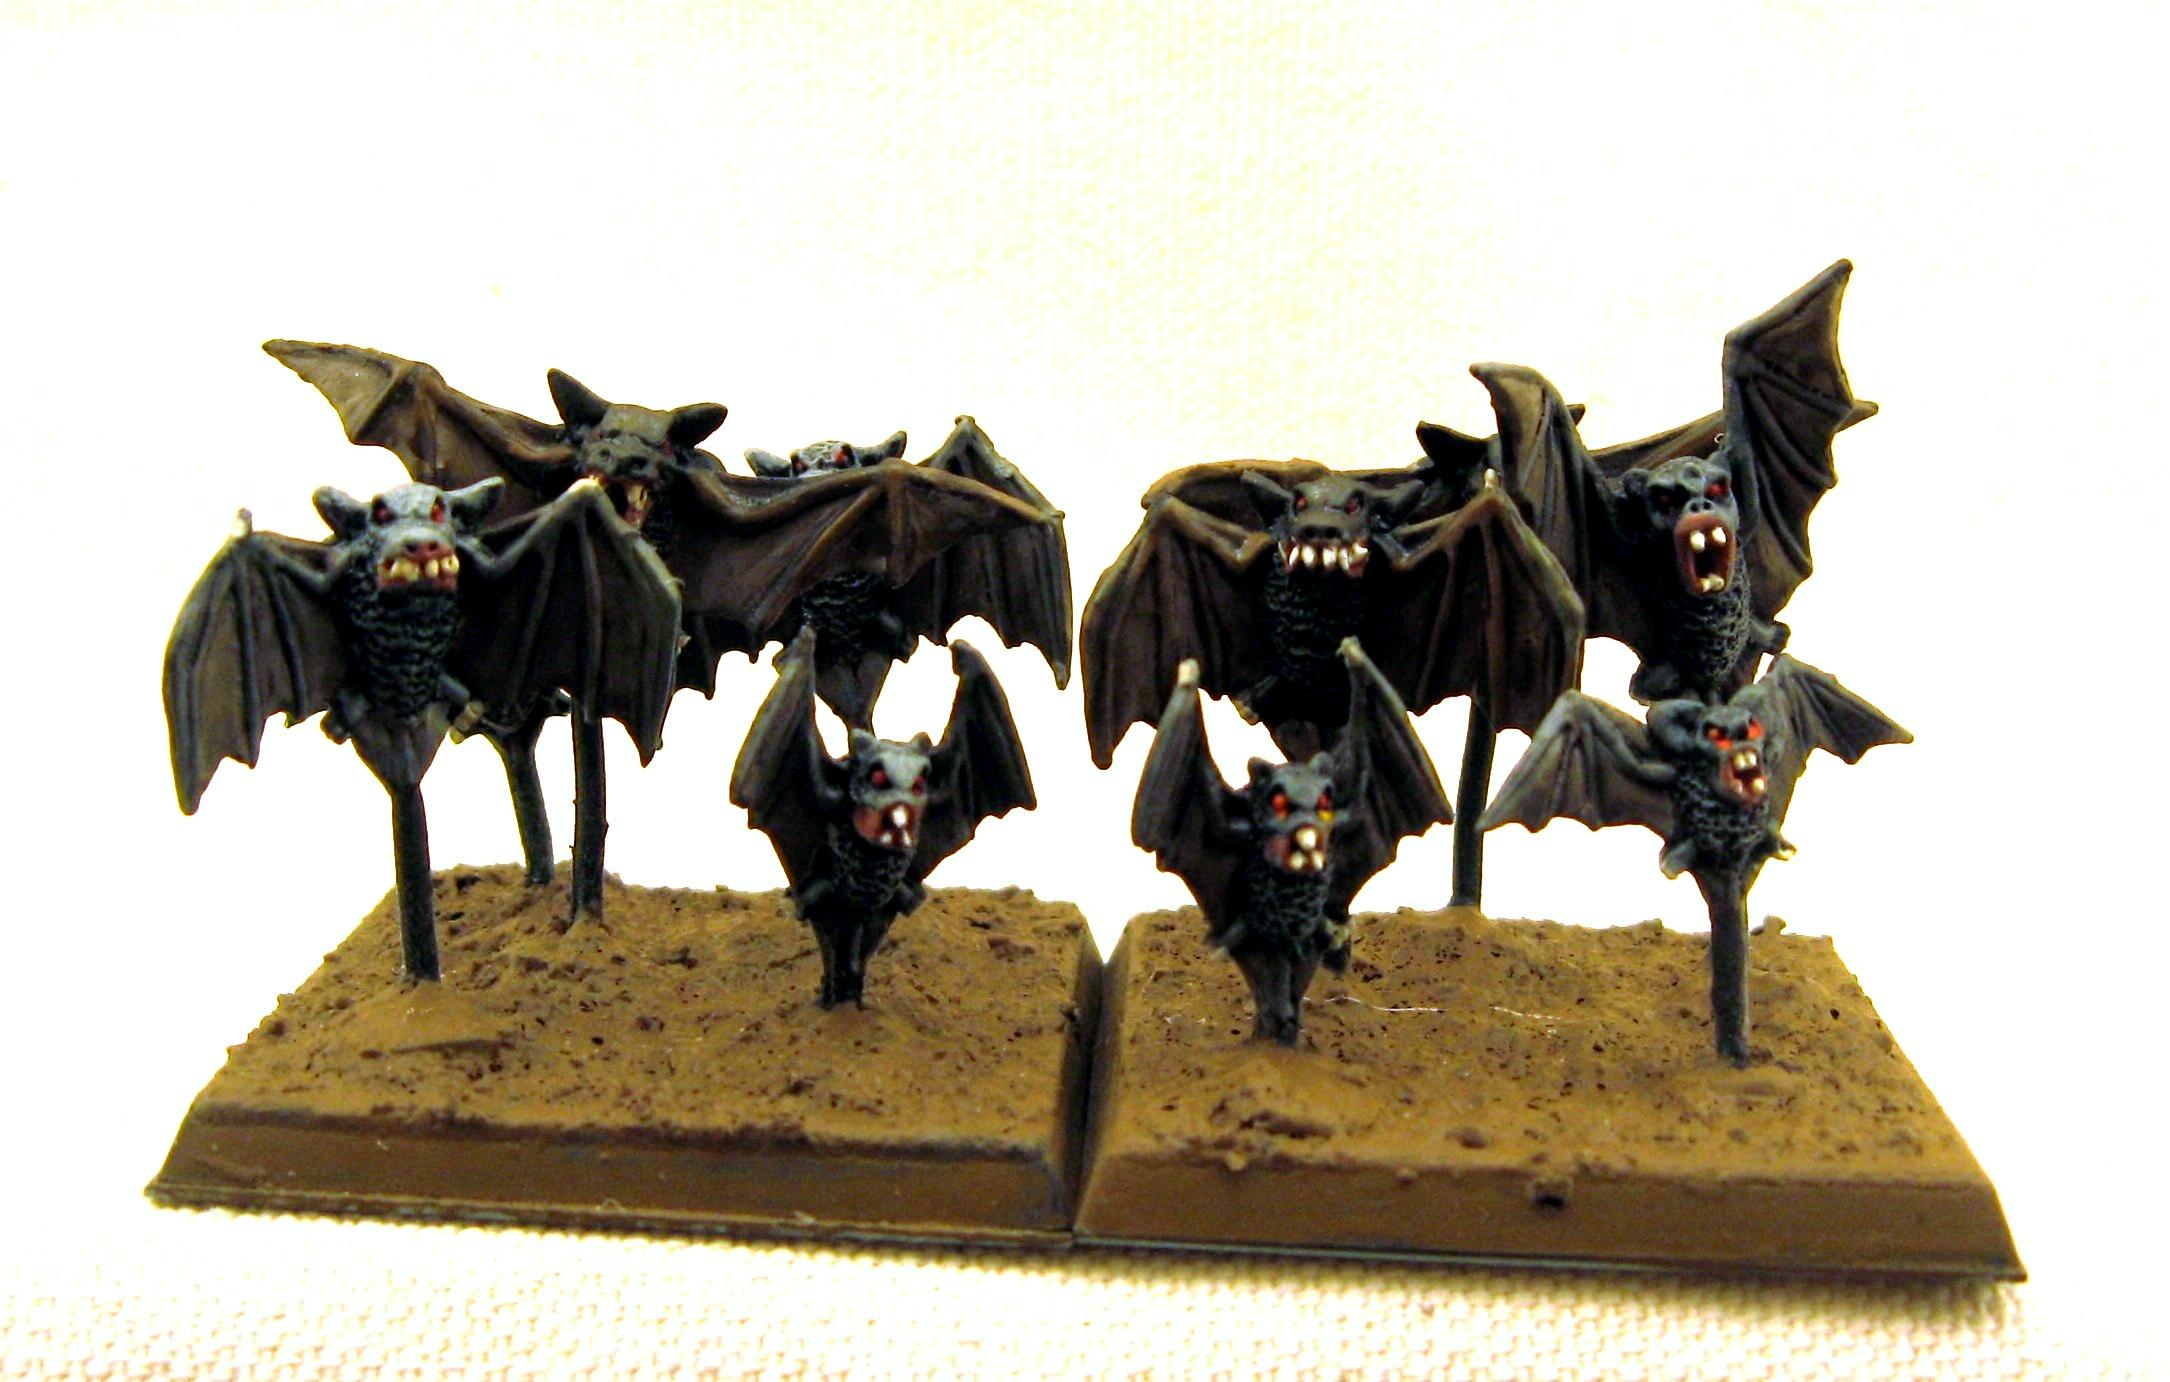 Bars, Bats, Vampire Counts, Warhammer Fantasy